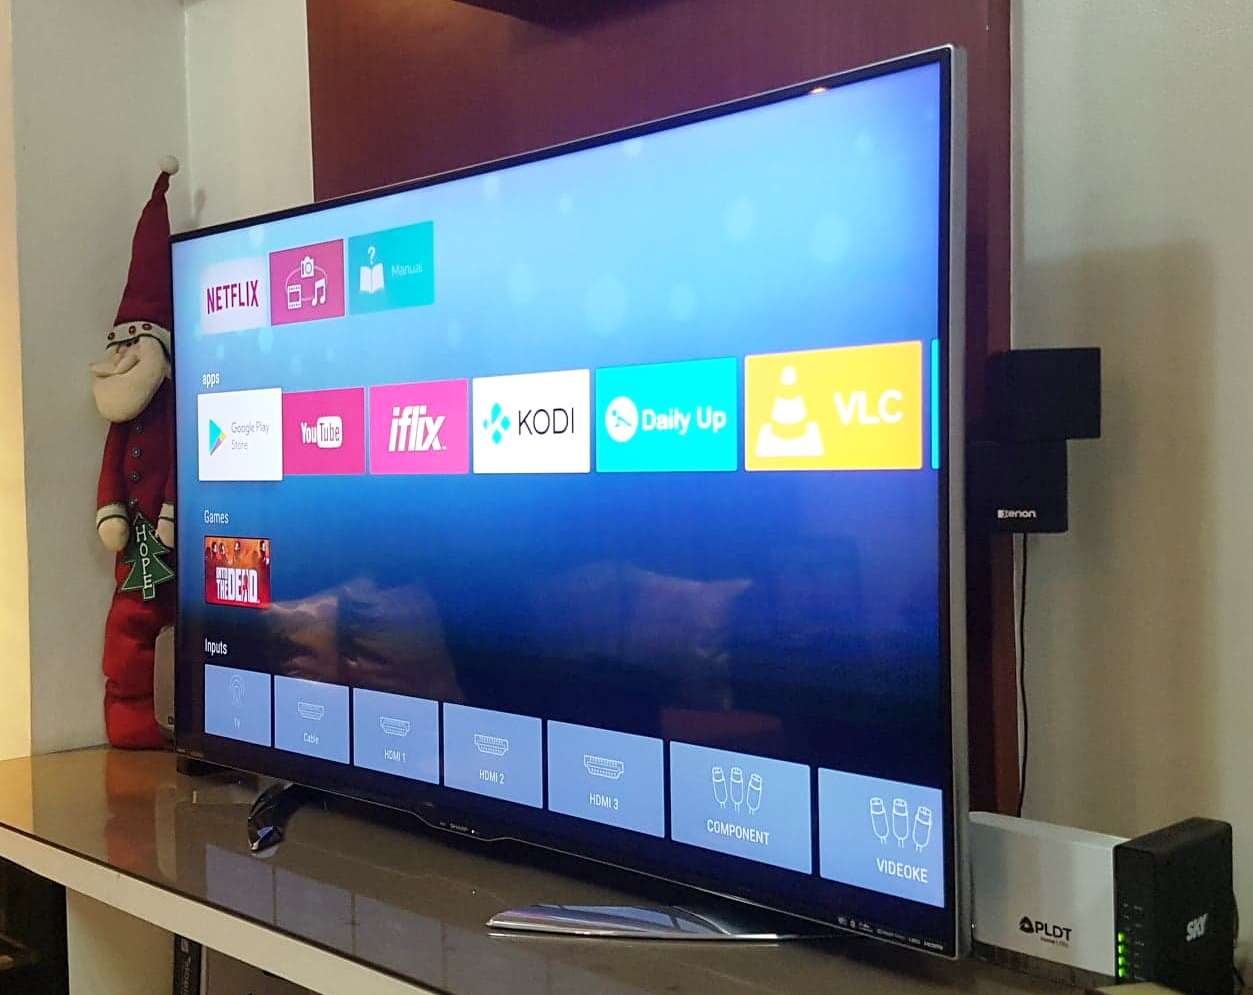 Sharp Aquos 58inch 4K UHD Android TV Complete